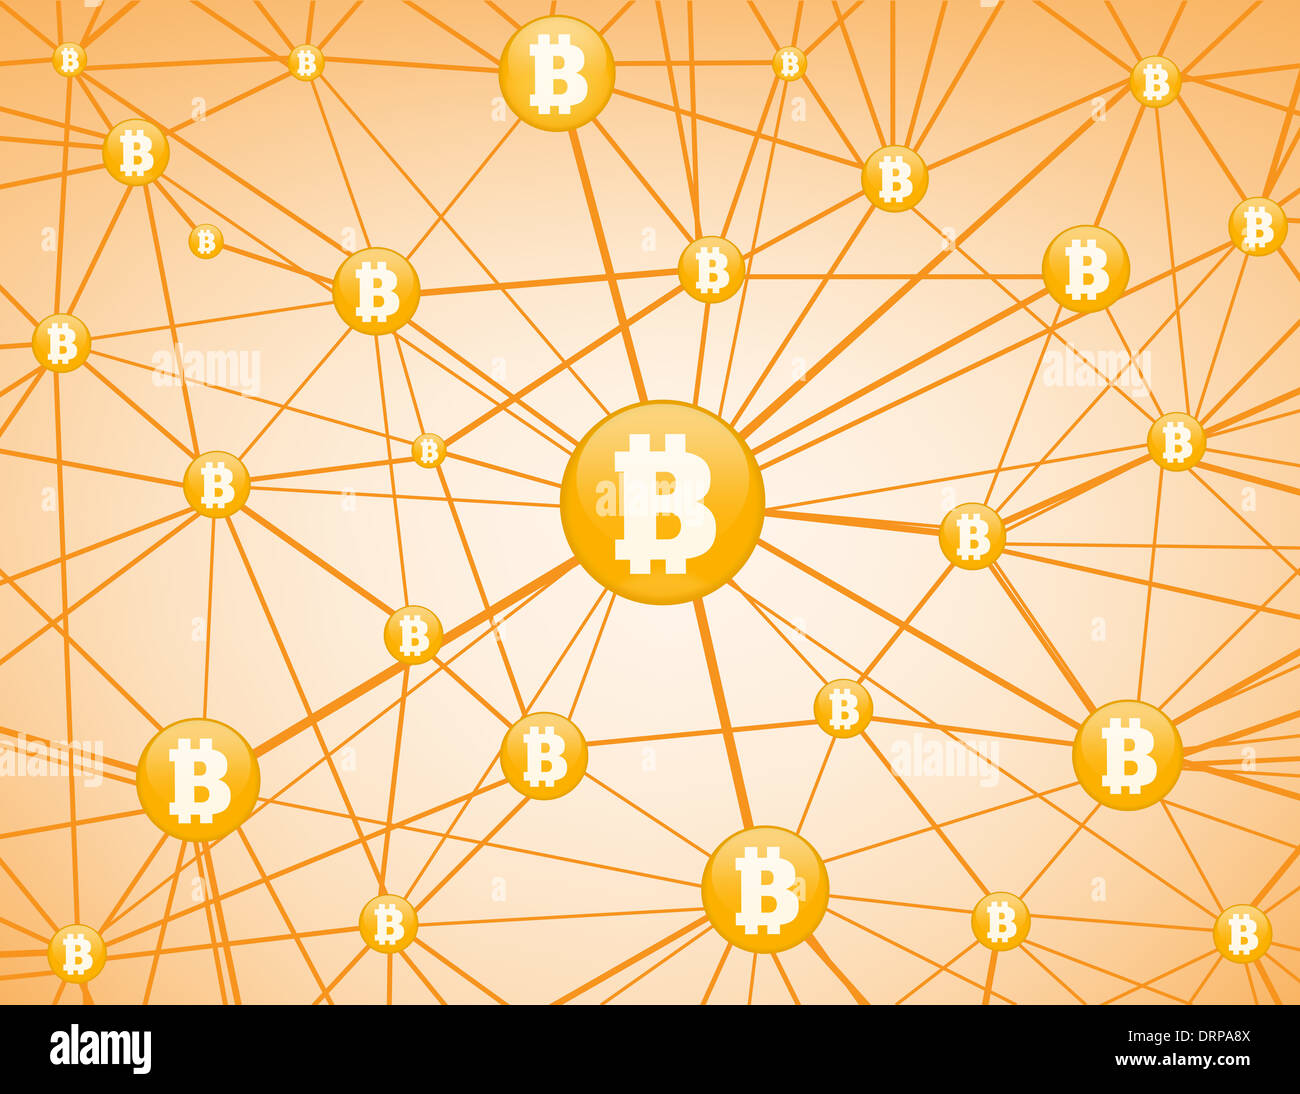 fiat money wallet html with Stock Photo Bitcoin  Work Yellow Background 66259226 on What Is Bitcoin Atm Wiki moreover bdcc besides Slim Floodlight together with Bitcoins In Real Life moreover Trekking Neck Travel Security Pouch For Wallet 3322 3676276.